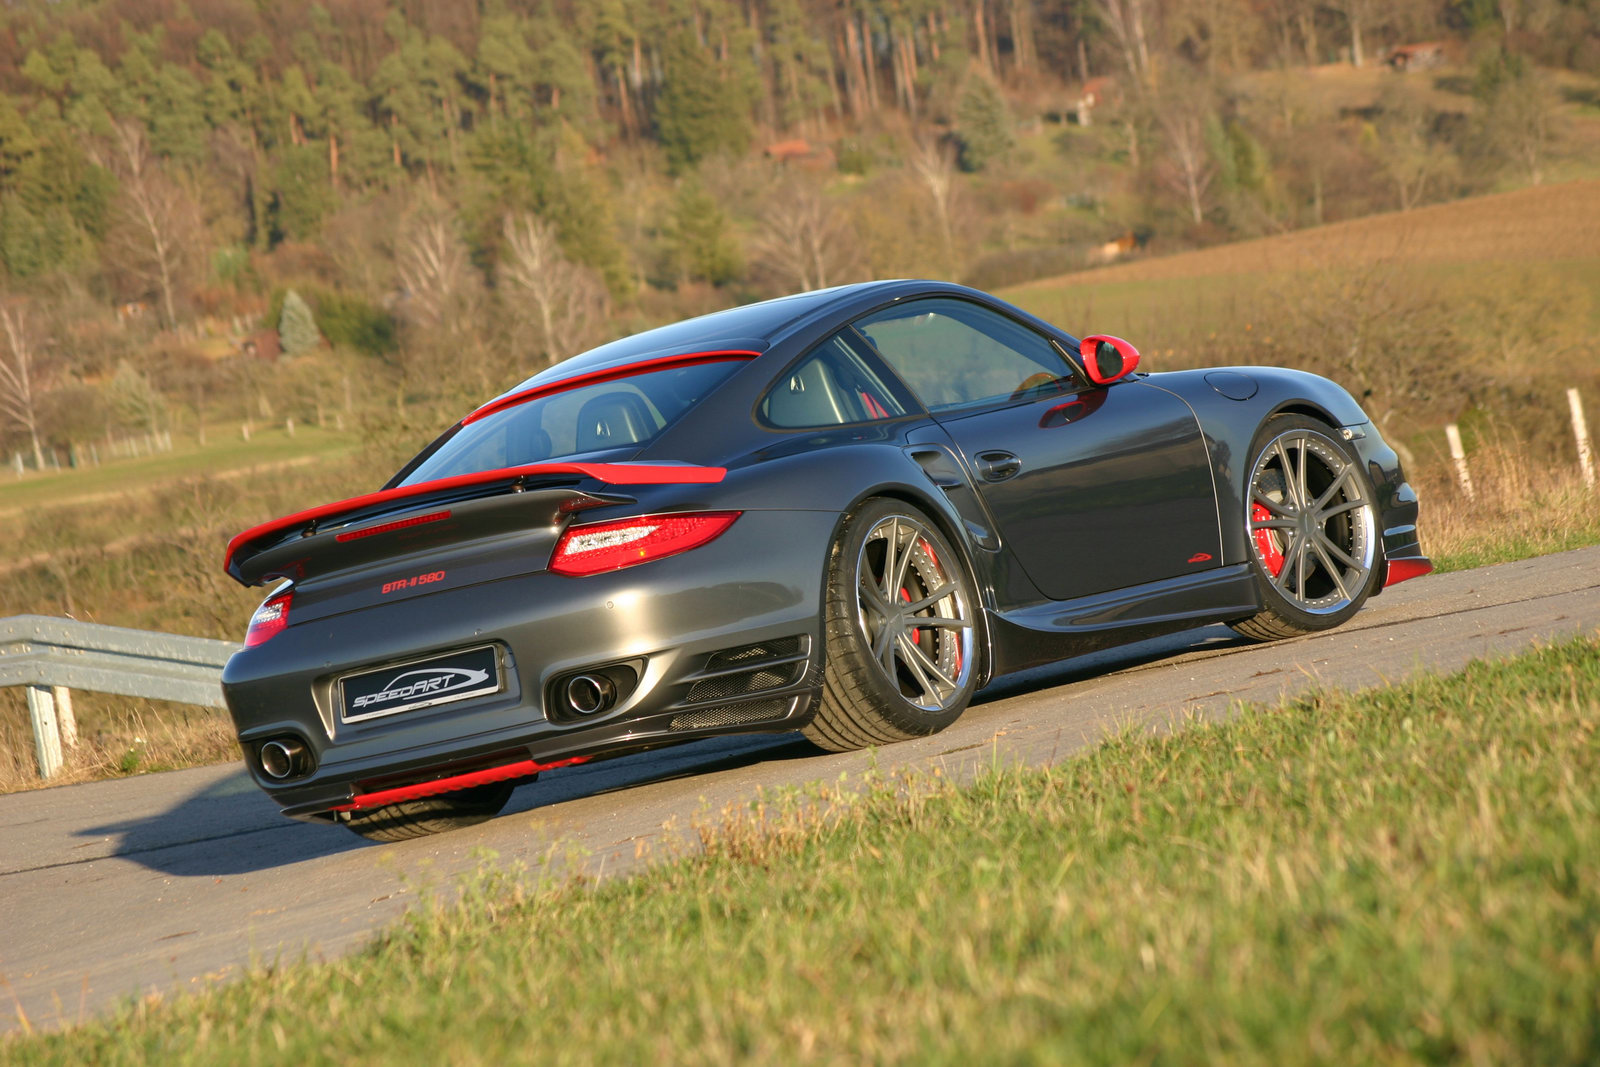 Porsche 911 Turbo Btr Ii By Speedart Top Speed